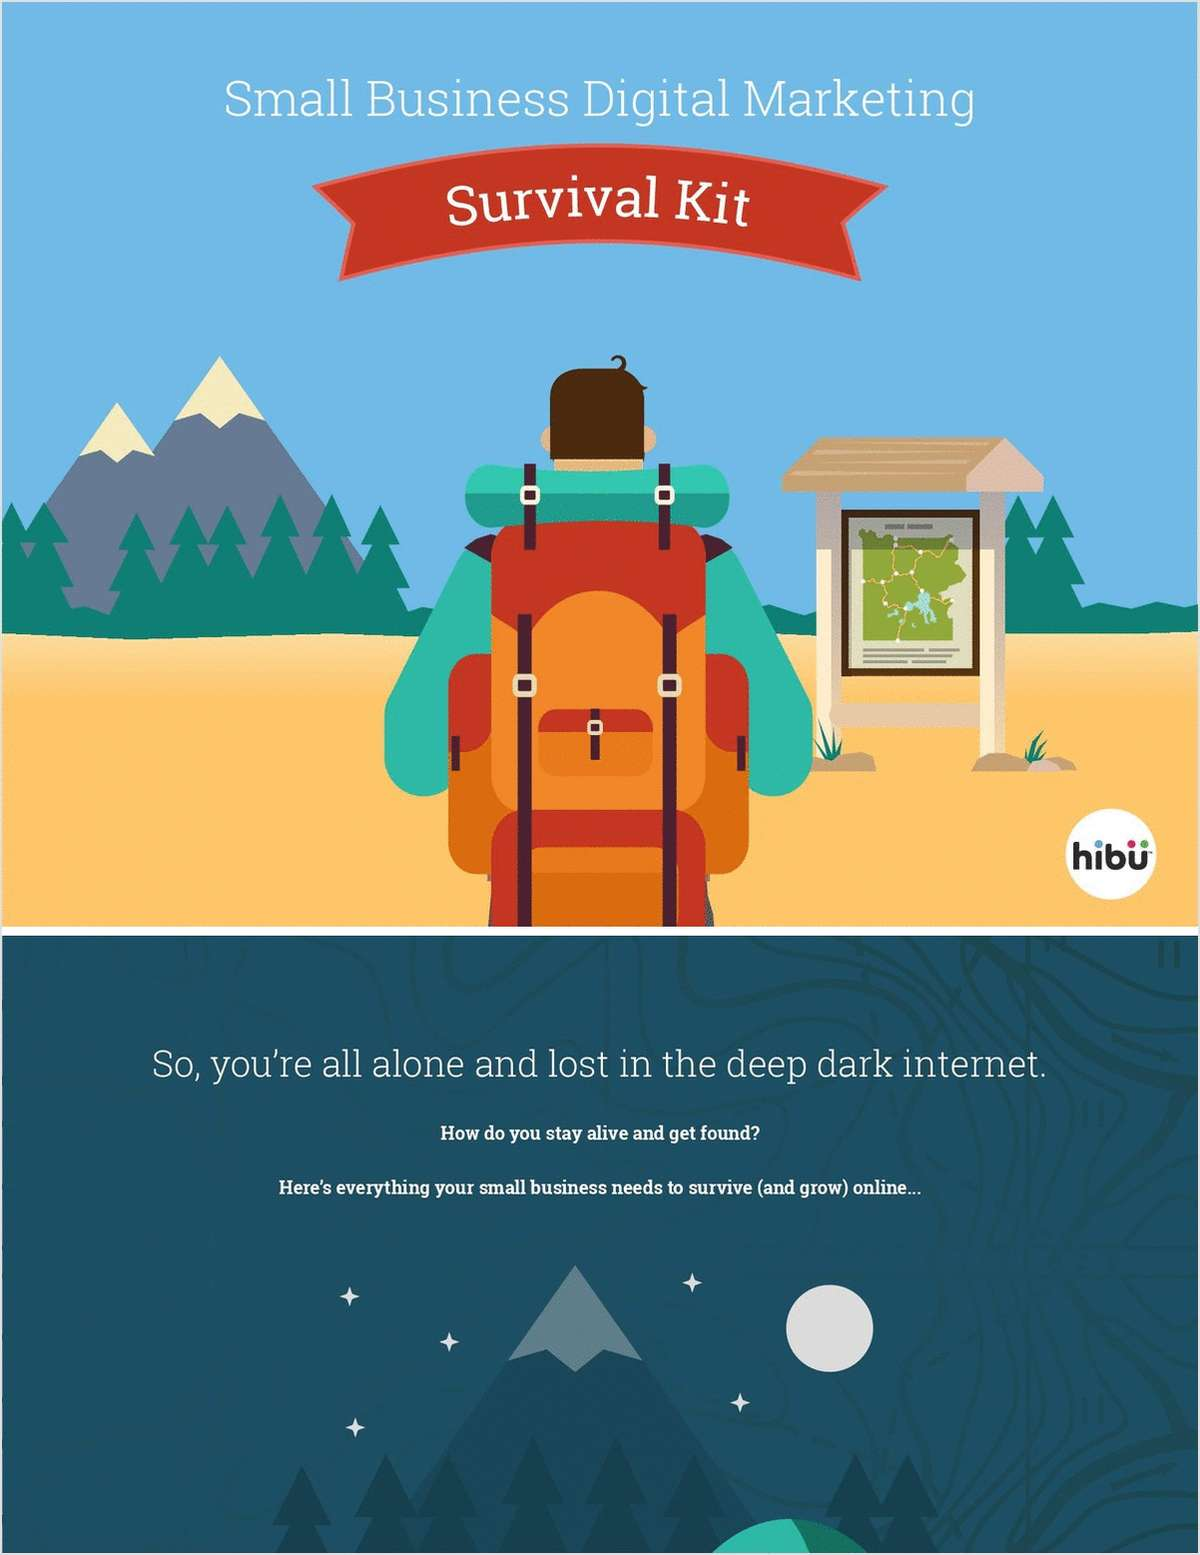 Small Business Digital Marketing Survival Kit